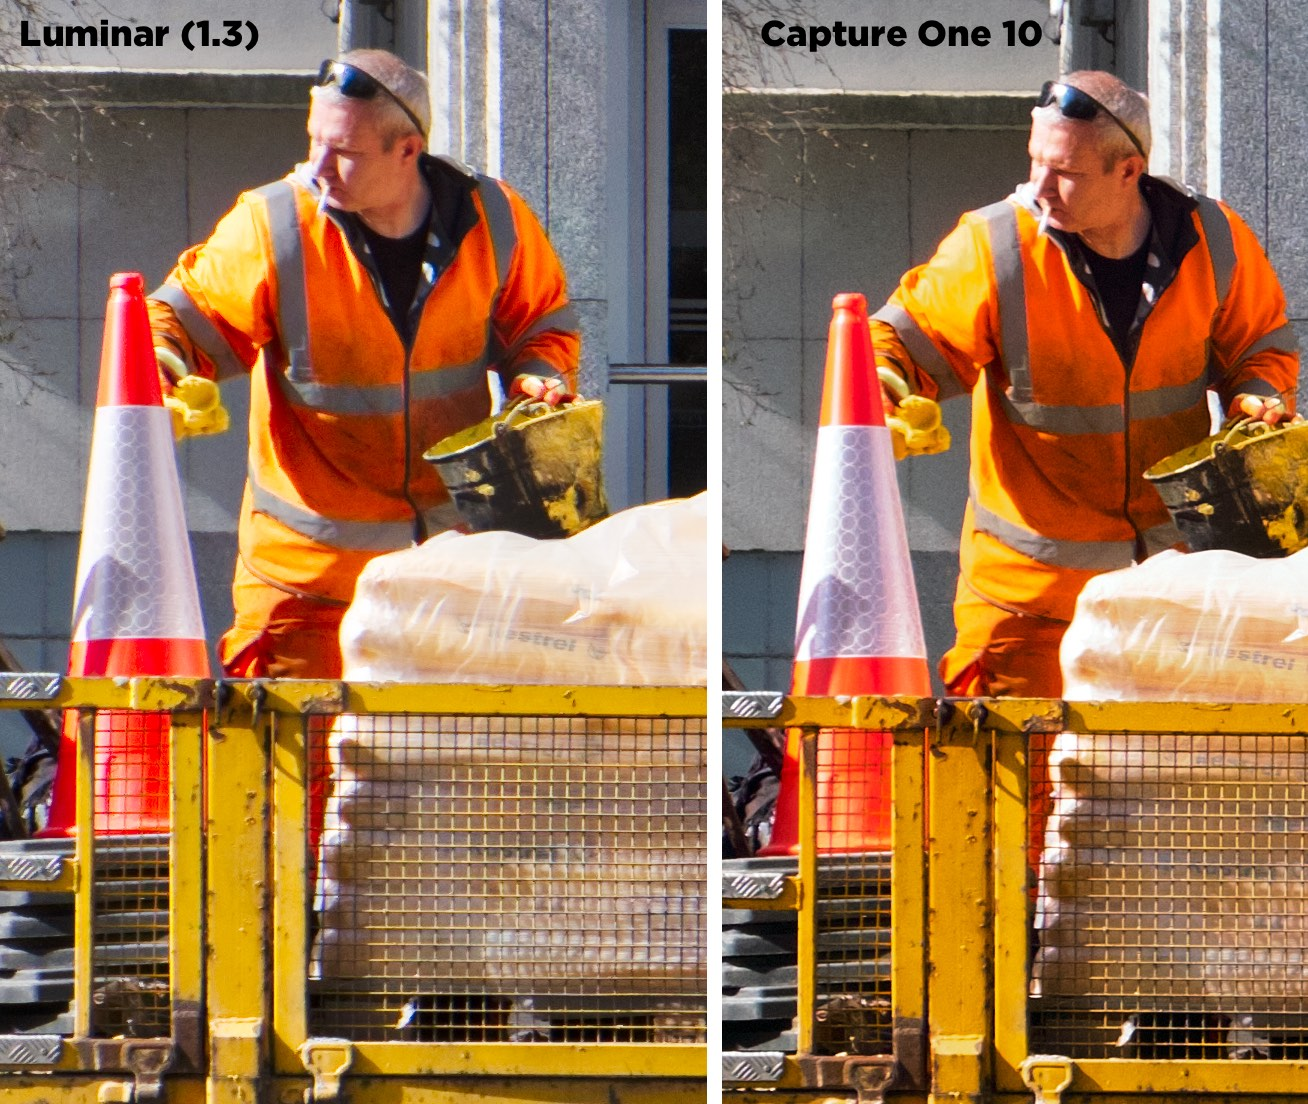 Luminar vs Capture One - Click on the image to see at proper resolution